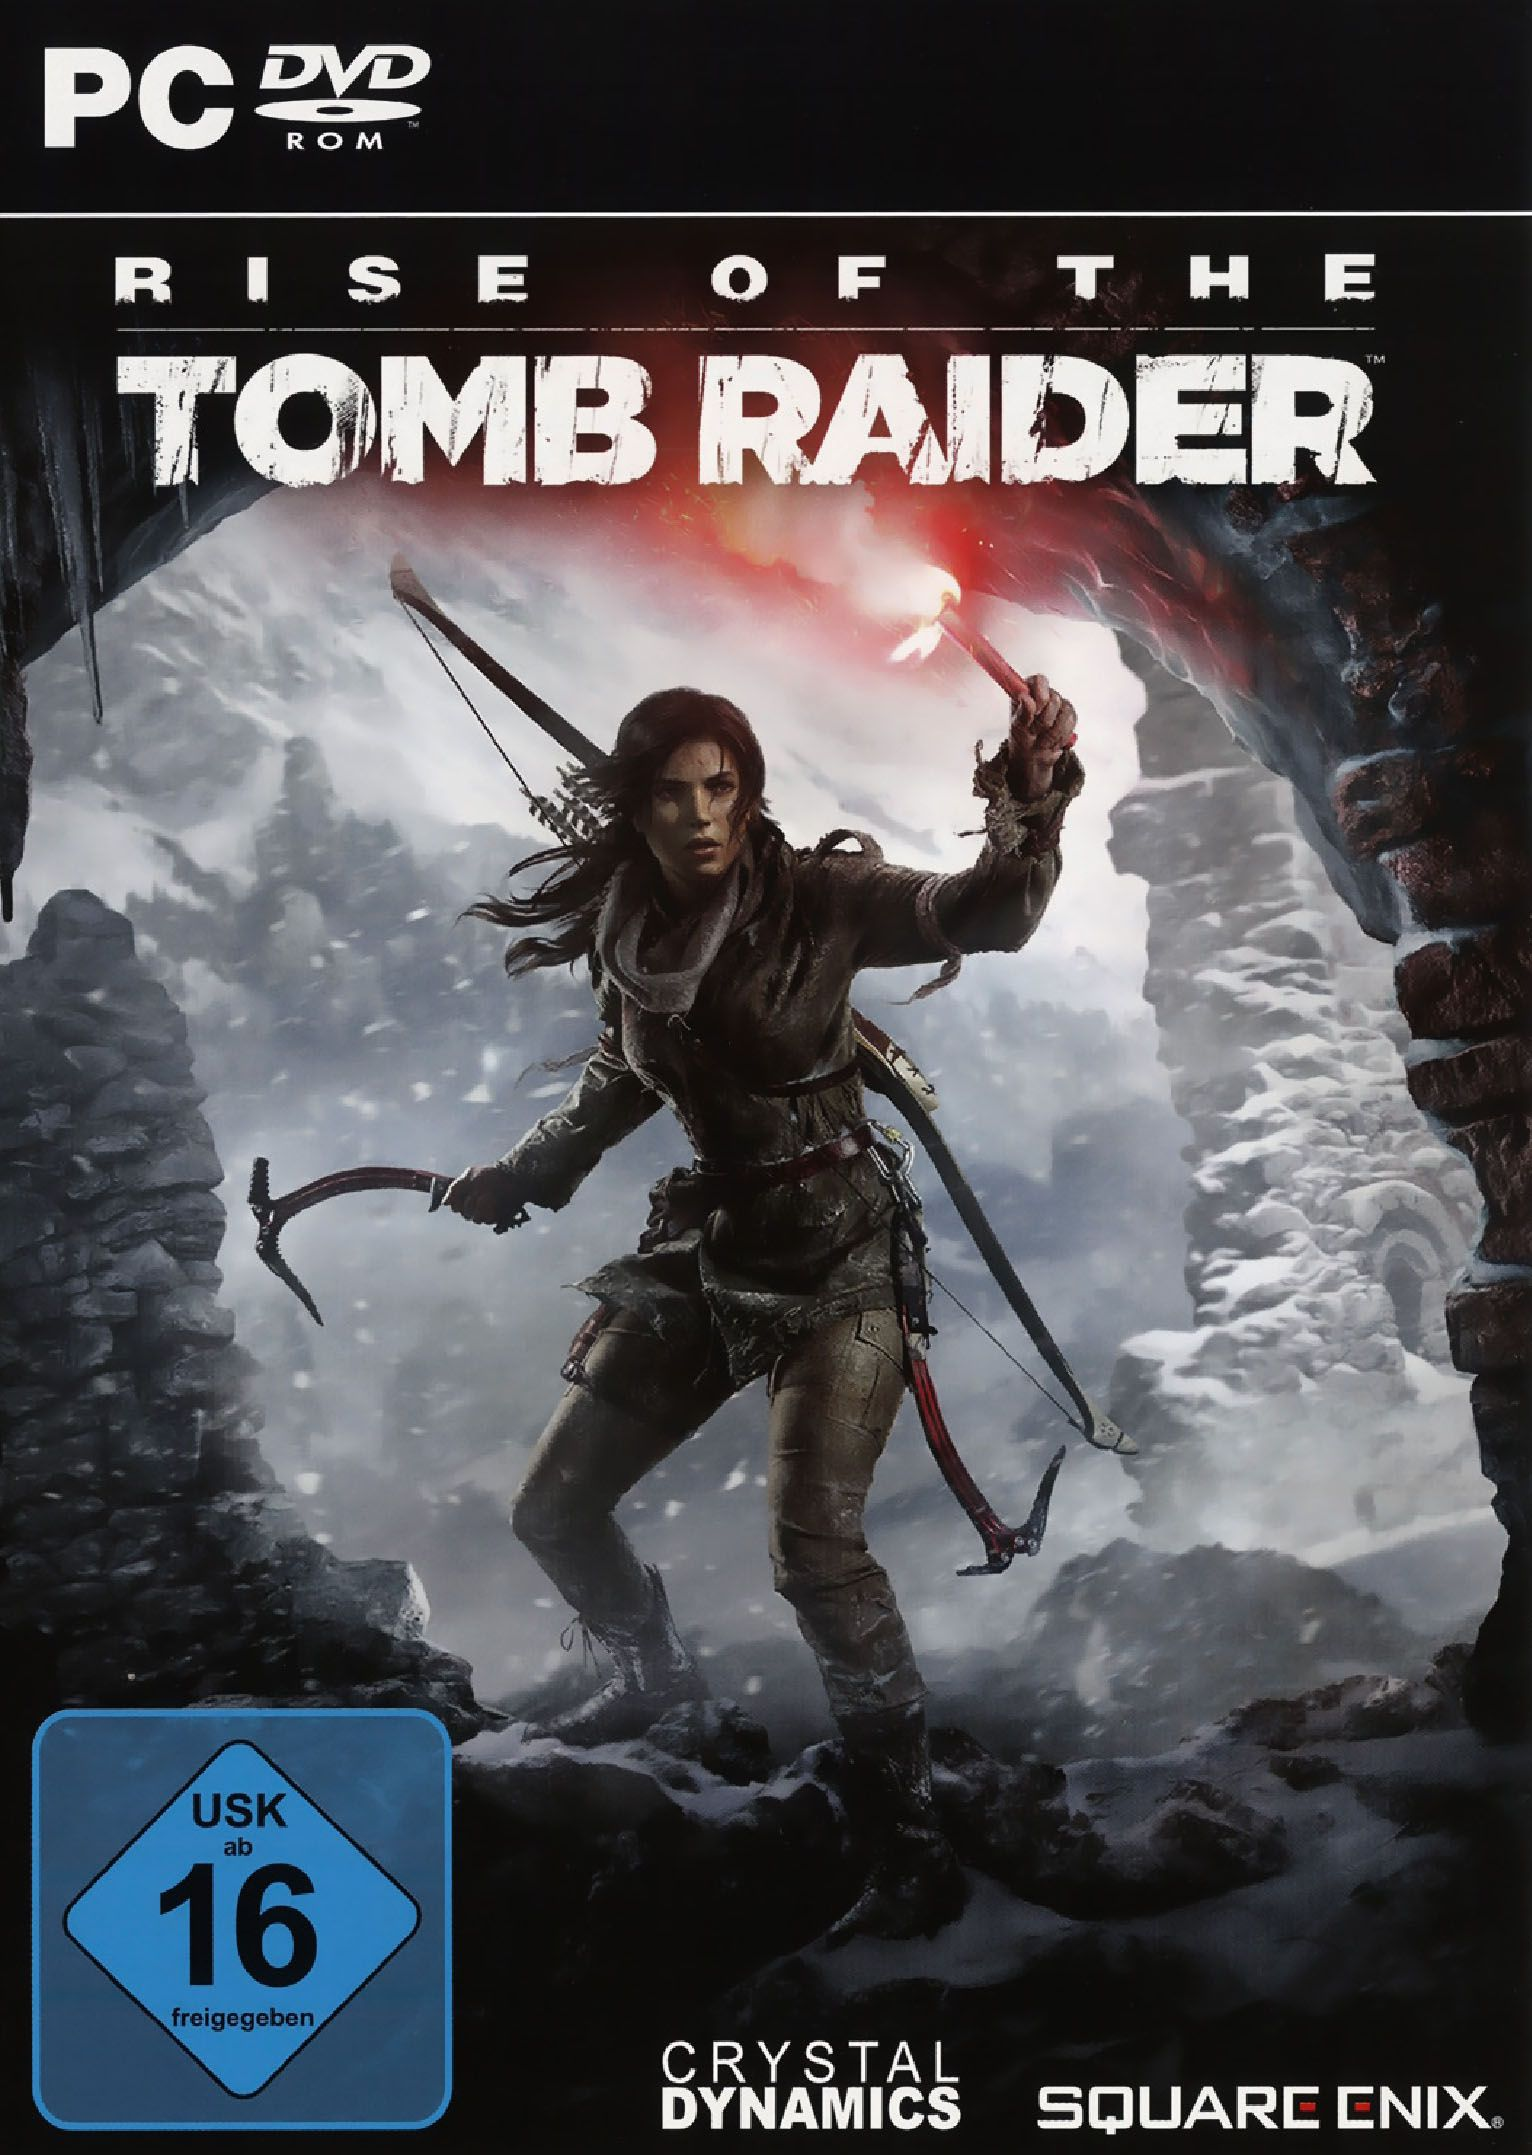 Download Game Gratis Rise Of The Tomb Raider 20 Years Celebration Full Version